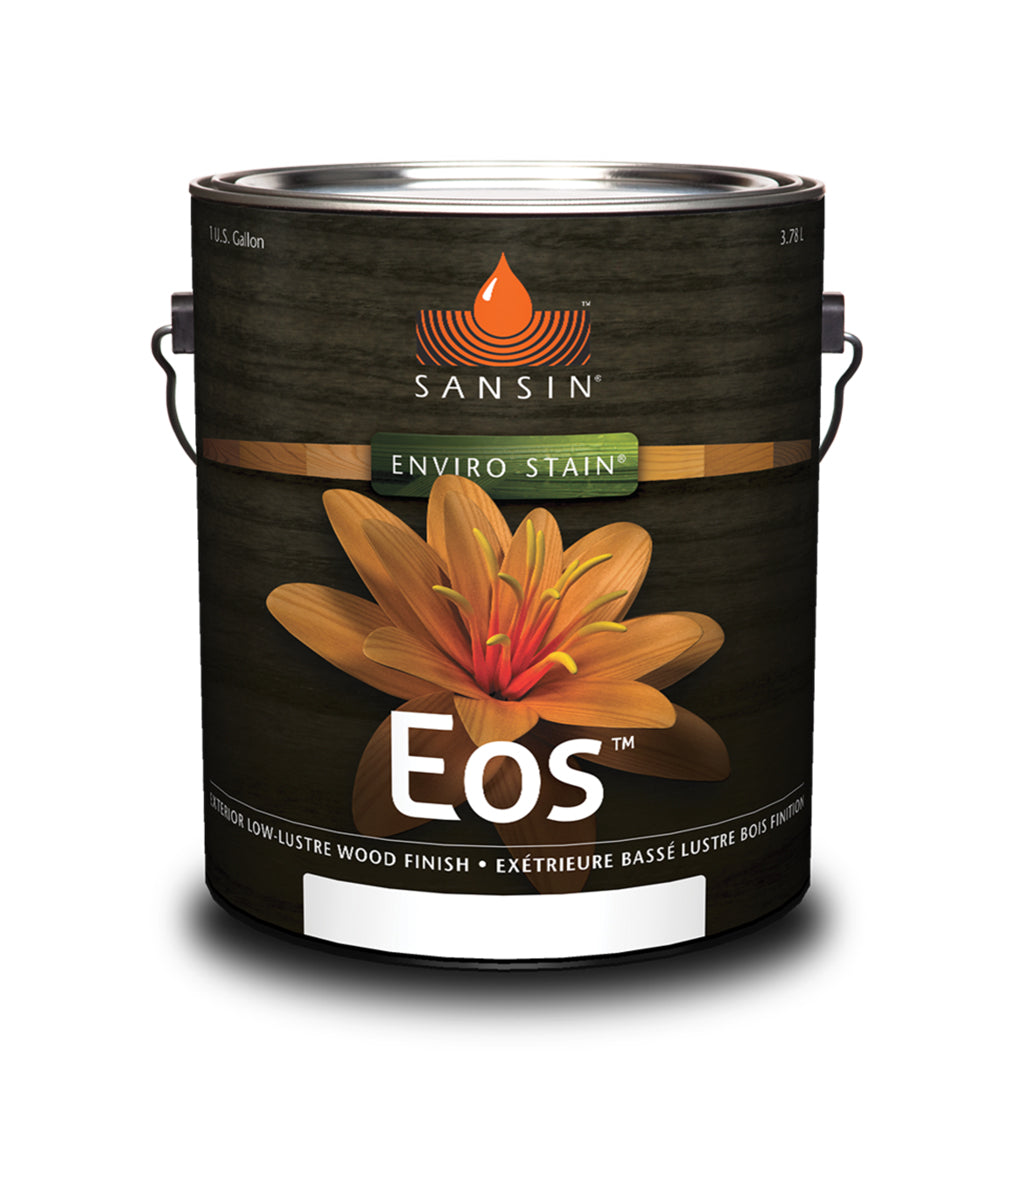 Sansin EOS Stain, available at Catalina Paints in CA.